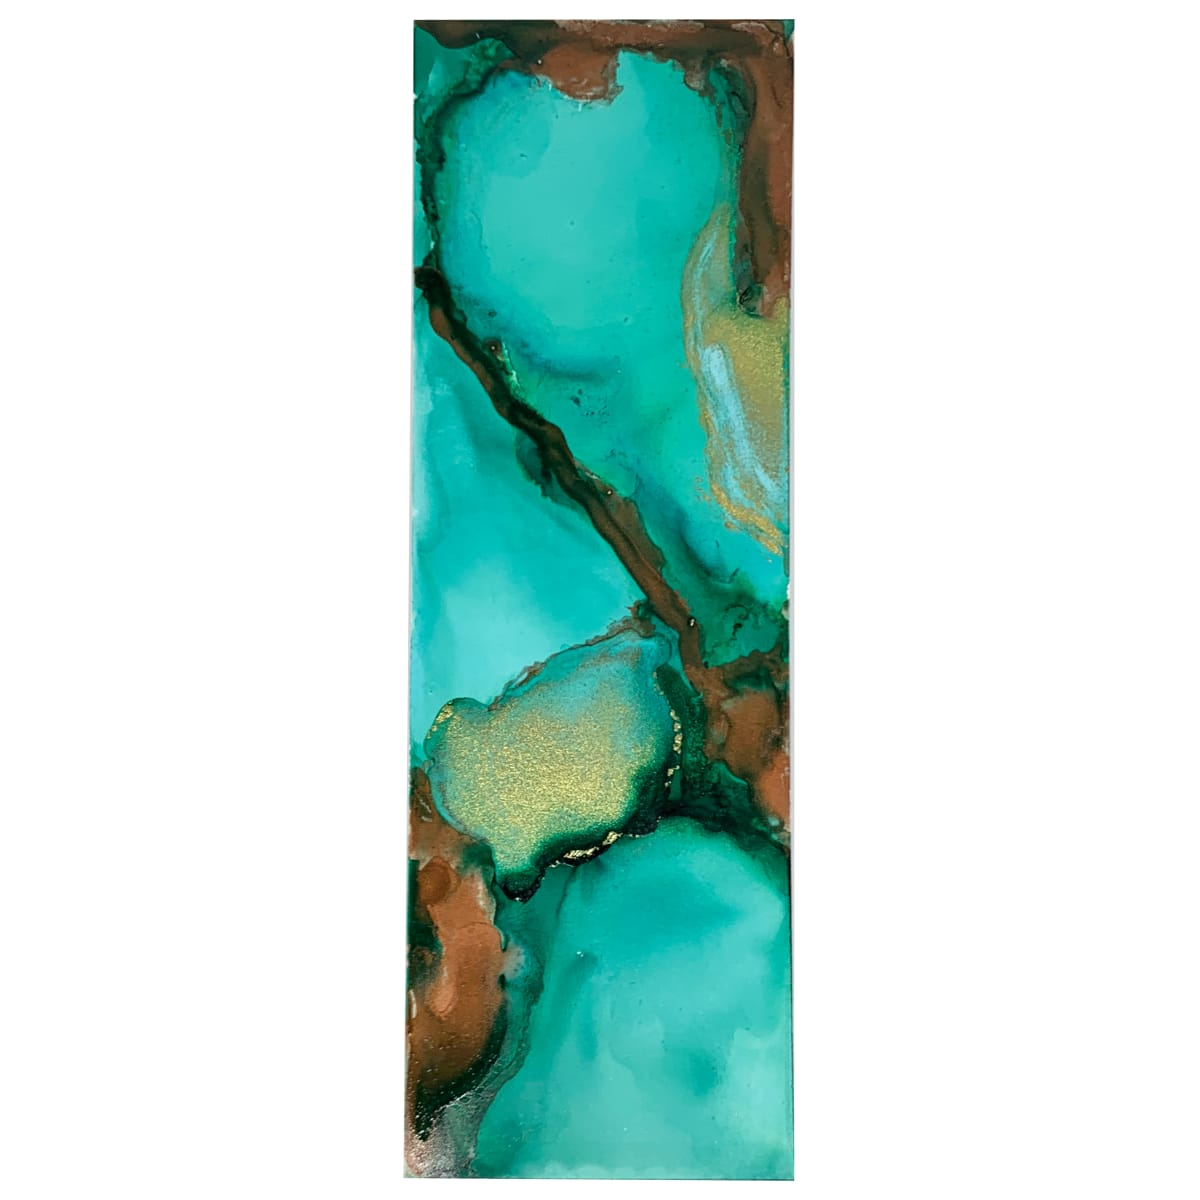 Alcohol Ink Bookmark - Turquoise, Copper #6 by Susi Schuele